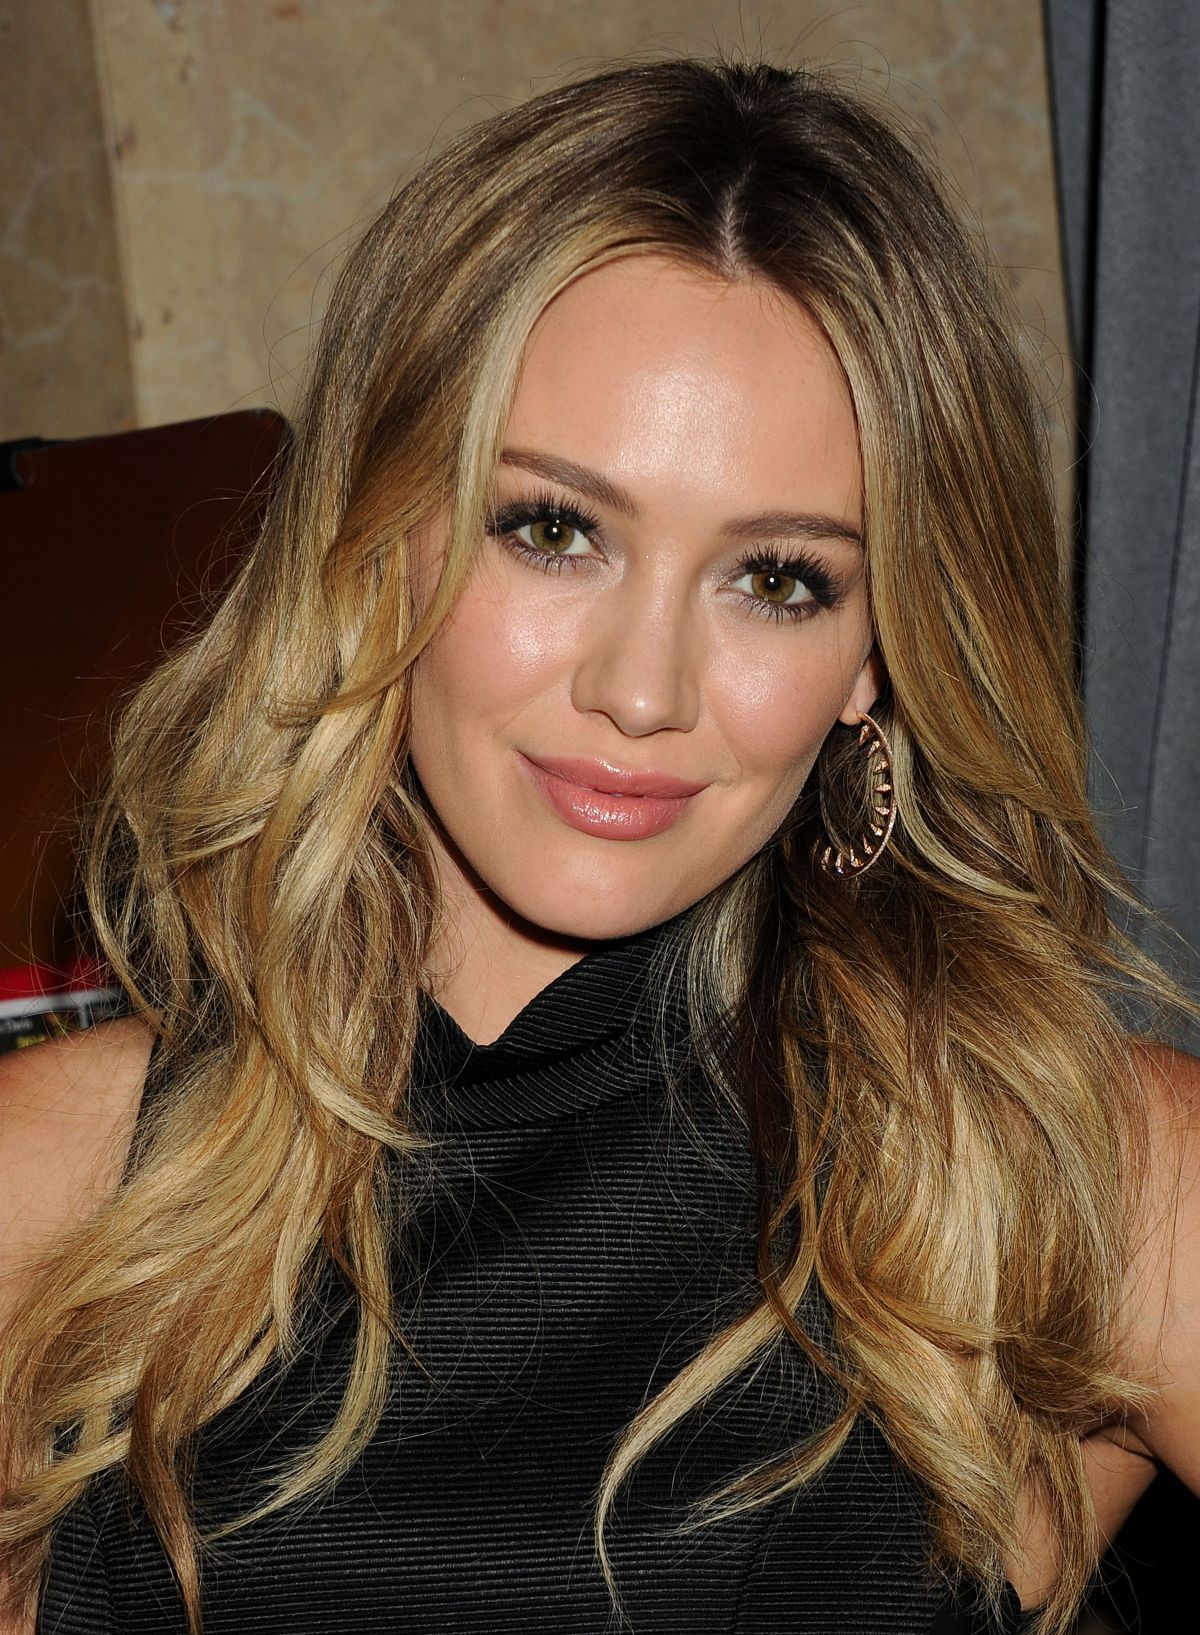 Hilary duff photo gallery hillary duff pinterest hilary duff